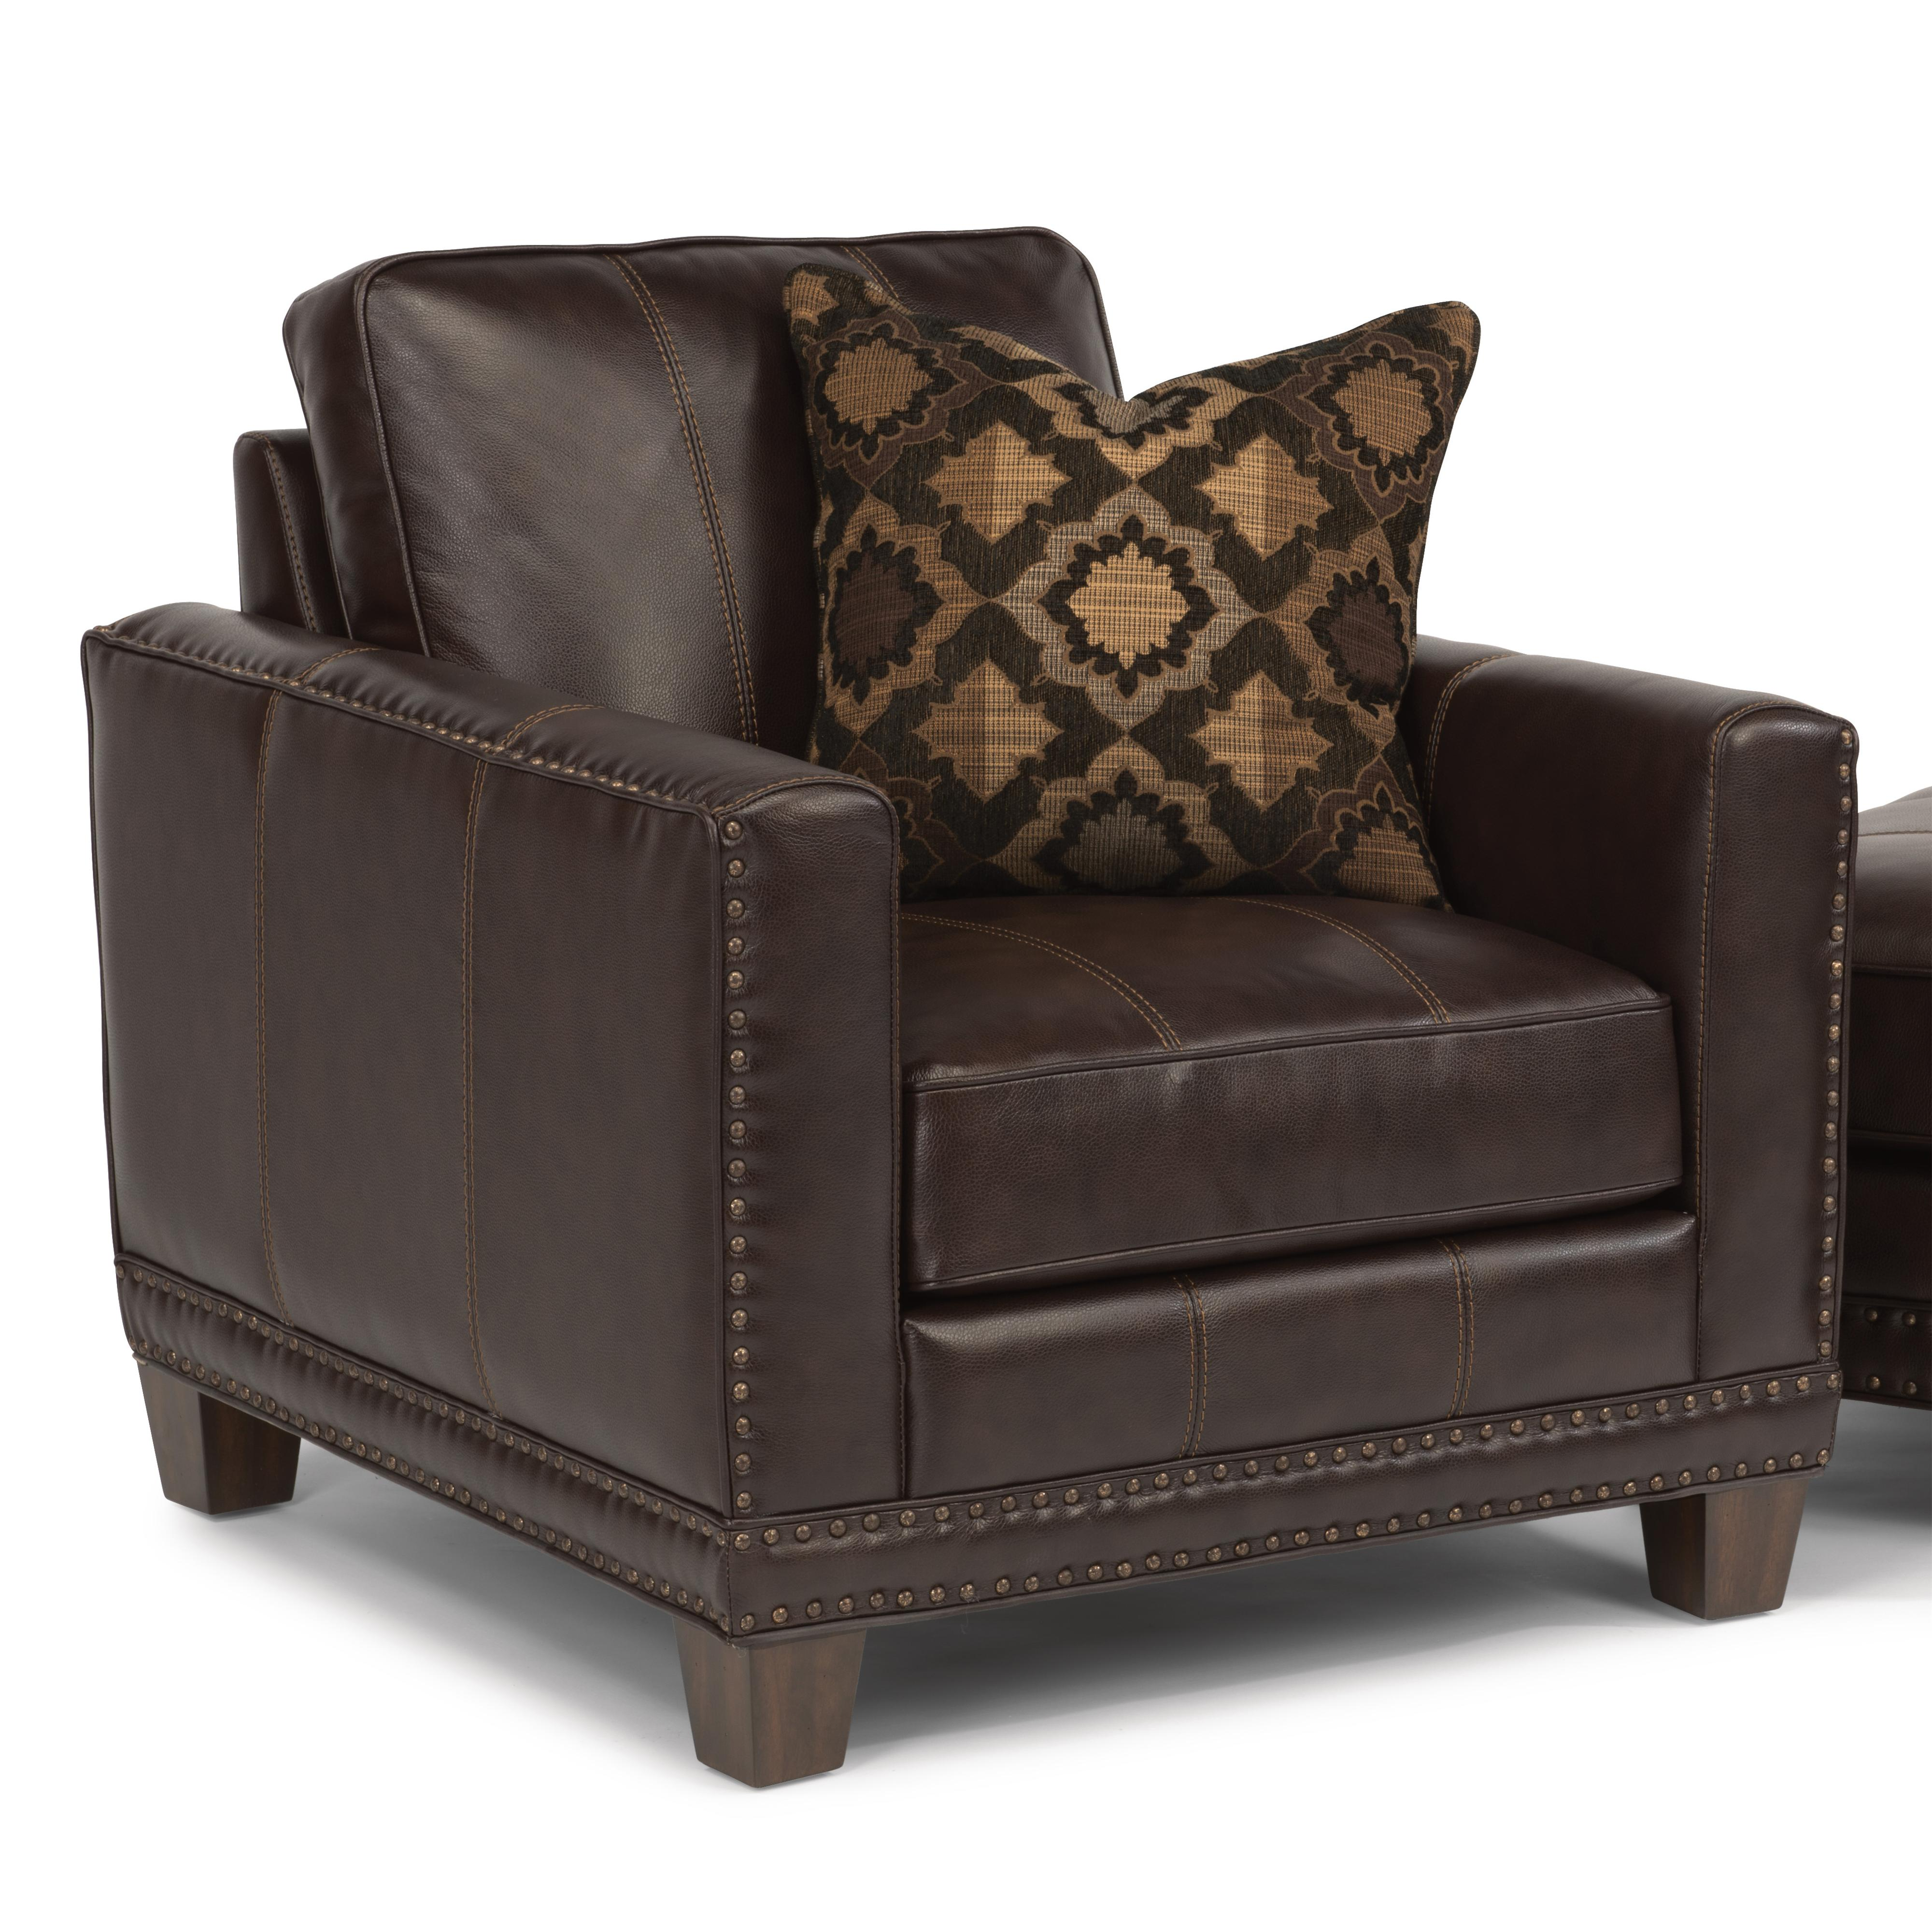 Latitudes - Port Royal Chair by Flexsteel at Northeast Factory Direct